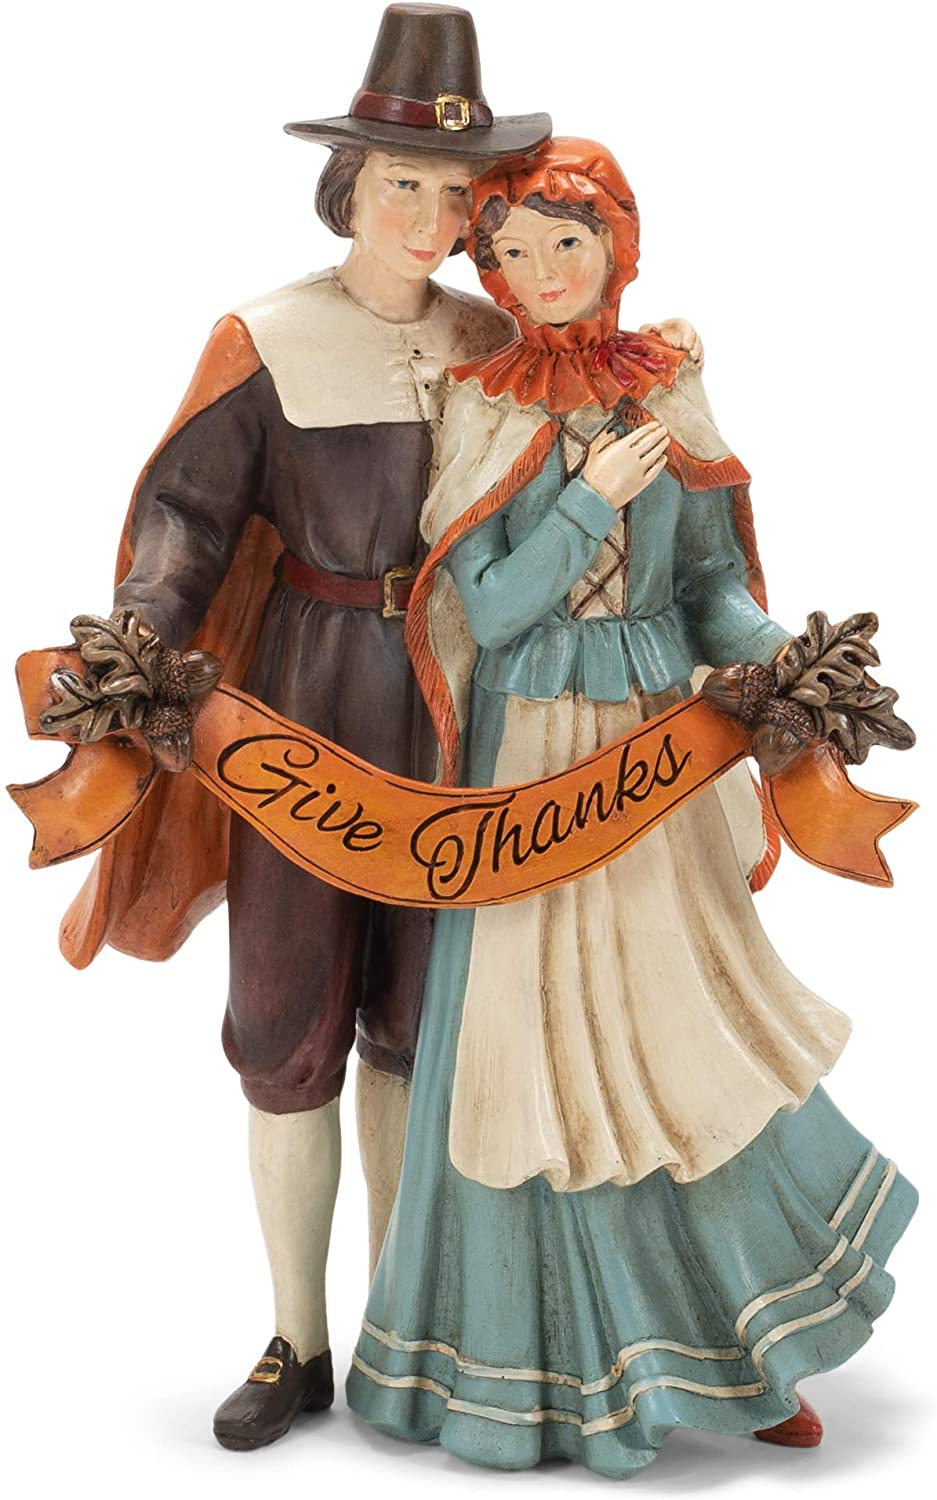 Give Thanks Pilgrim Natural 12 x 8 Resin Stone Thanksgiving Collectible Figurine